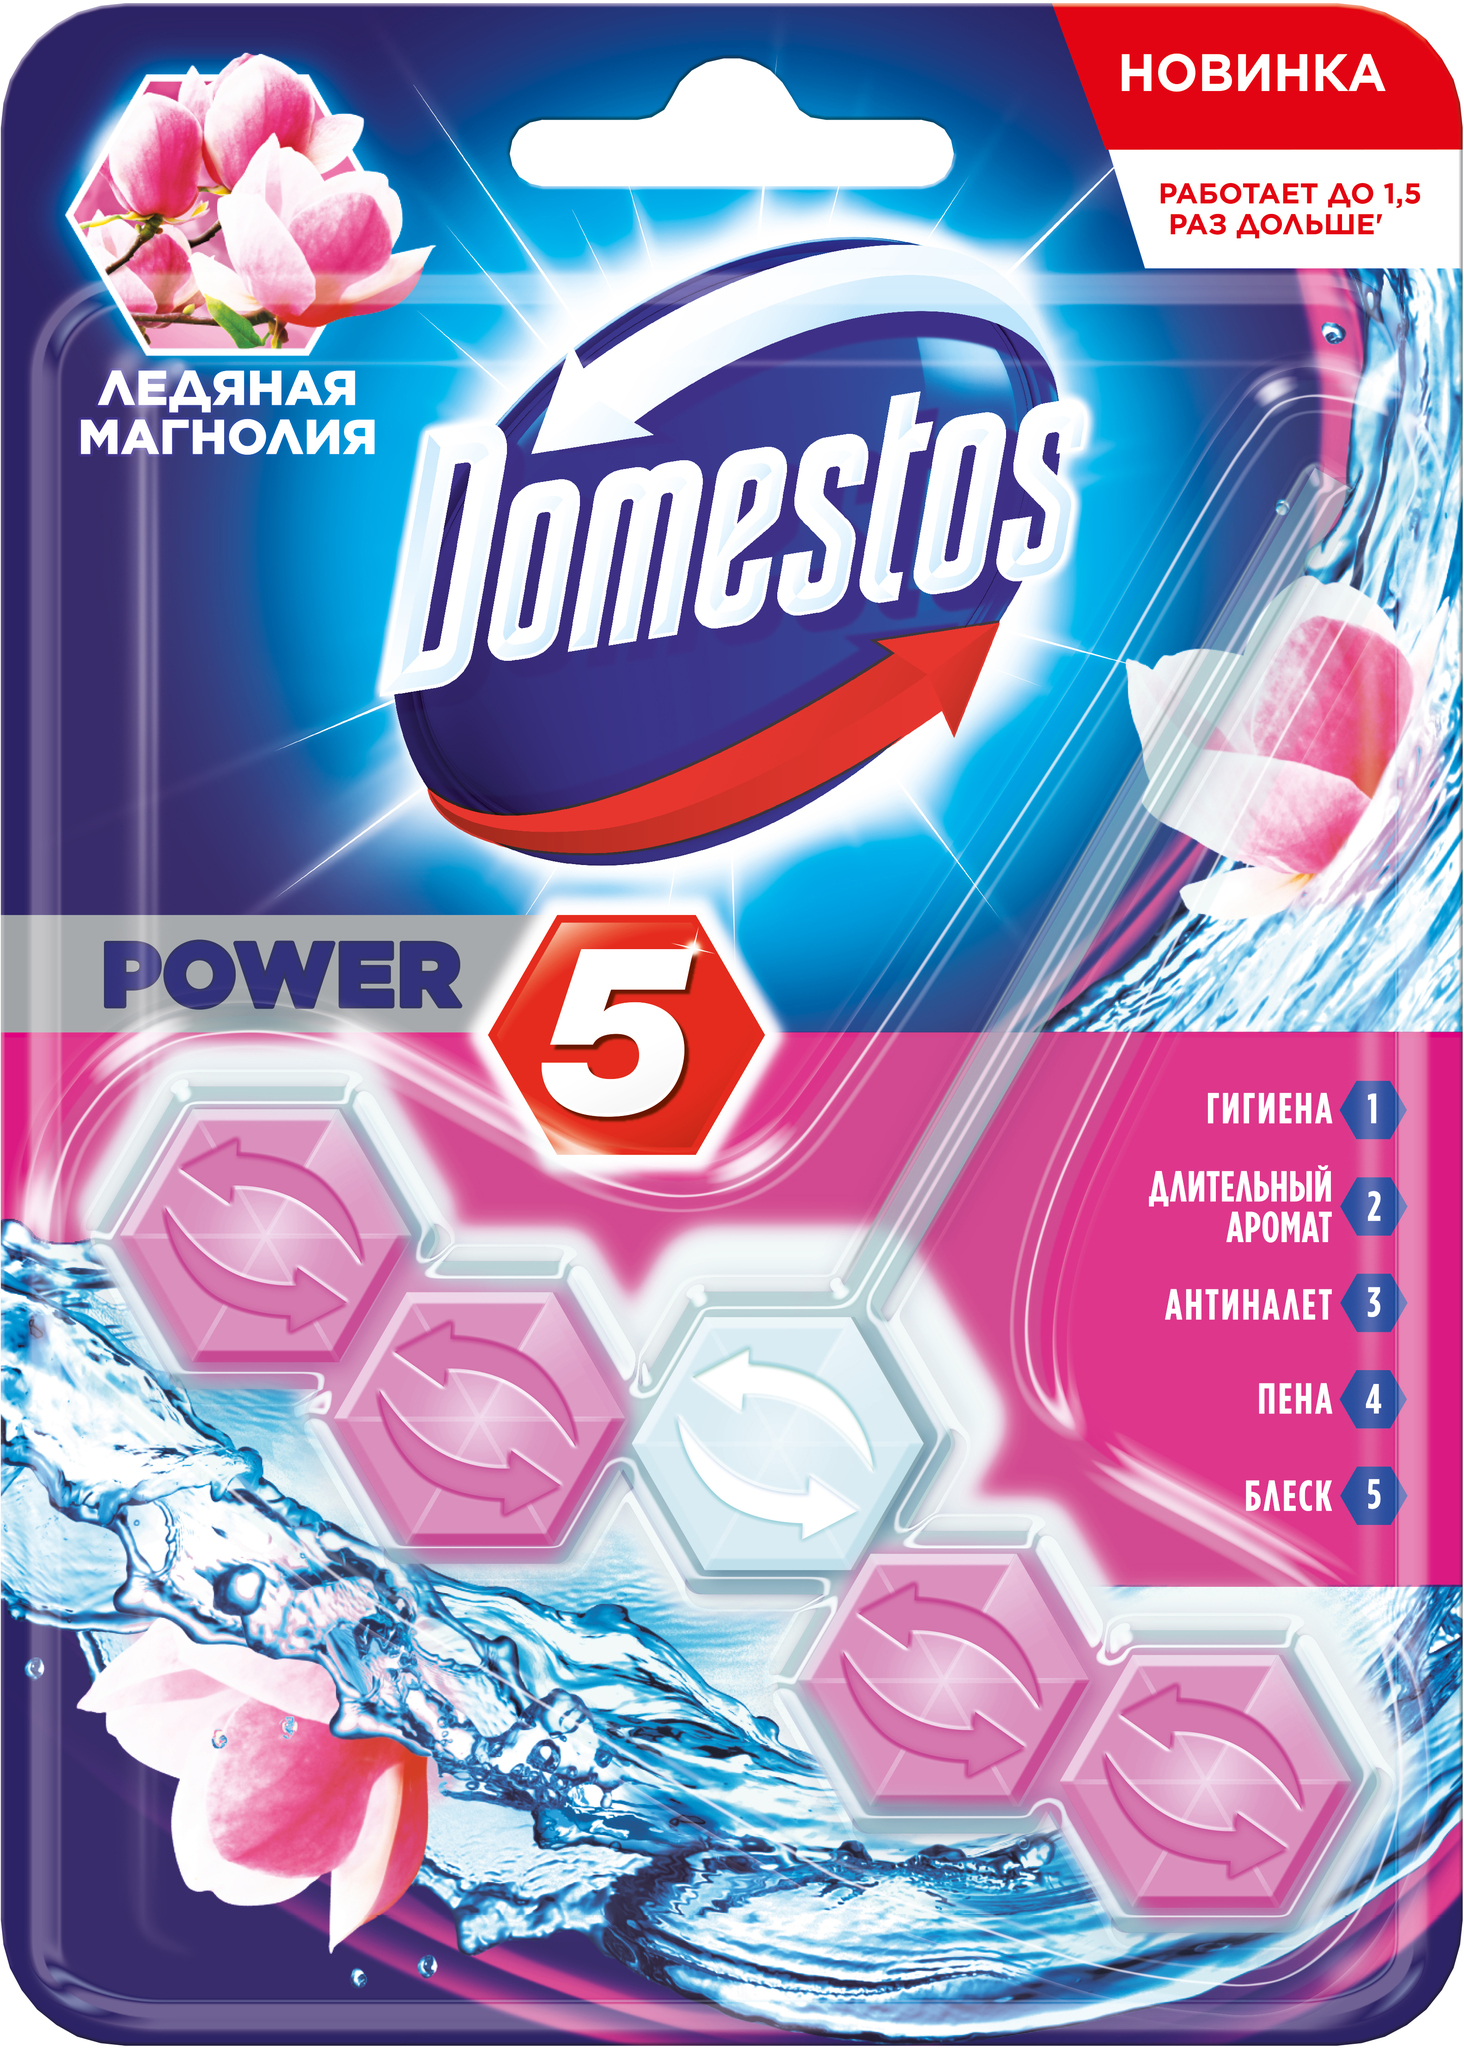 D:\products\domestos_8710447326008_images_9540477226_1.jpg